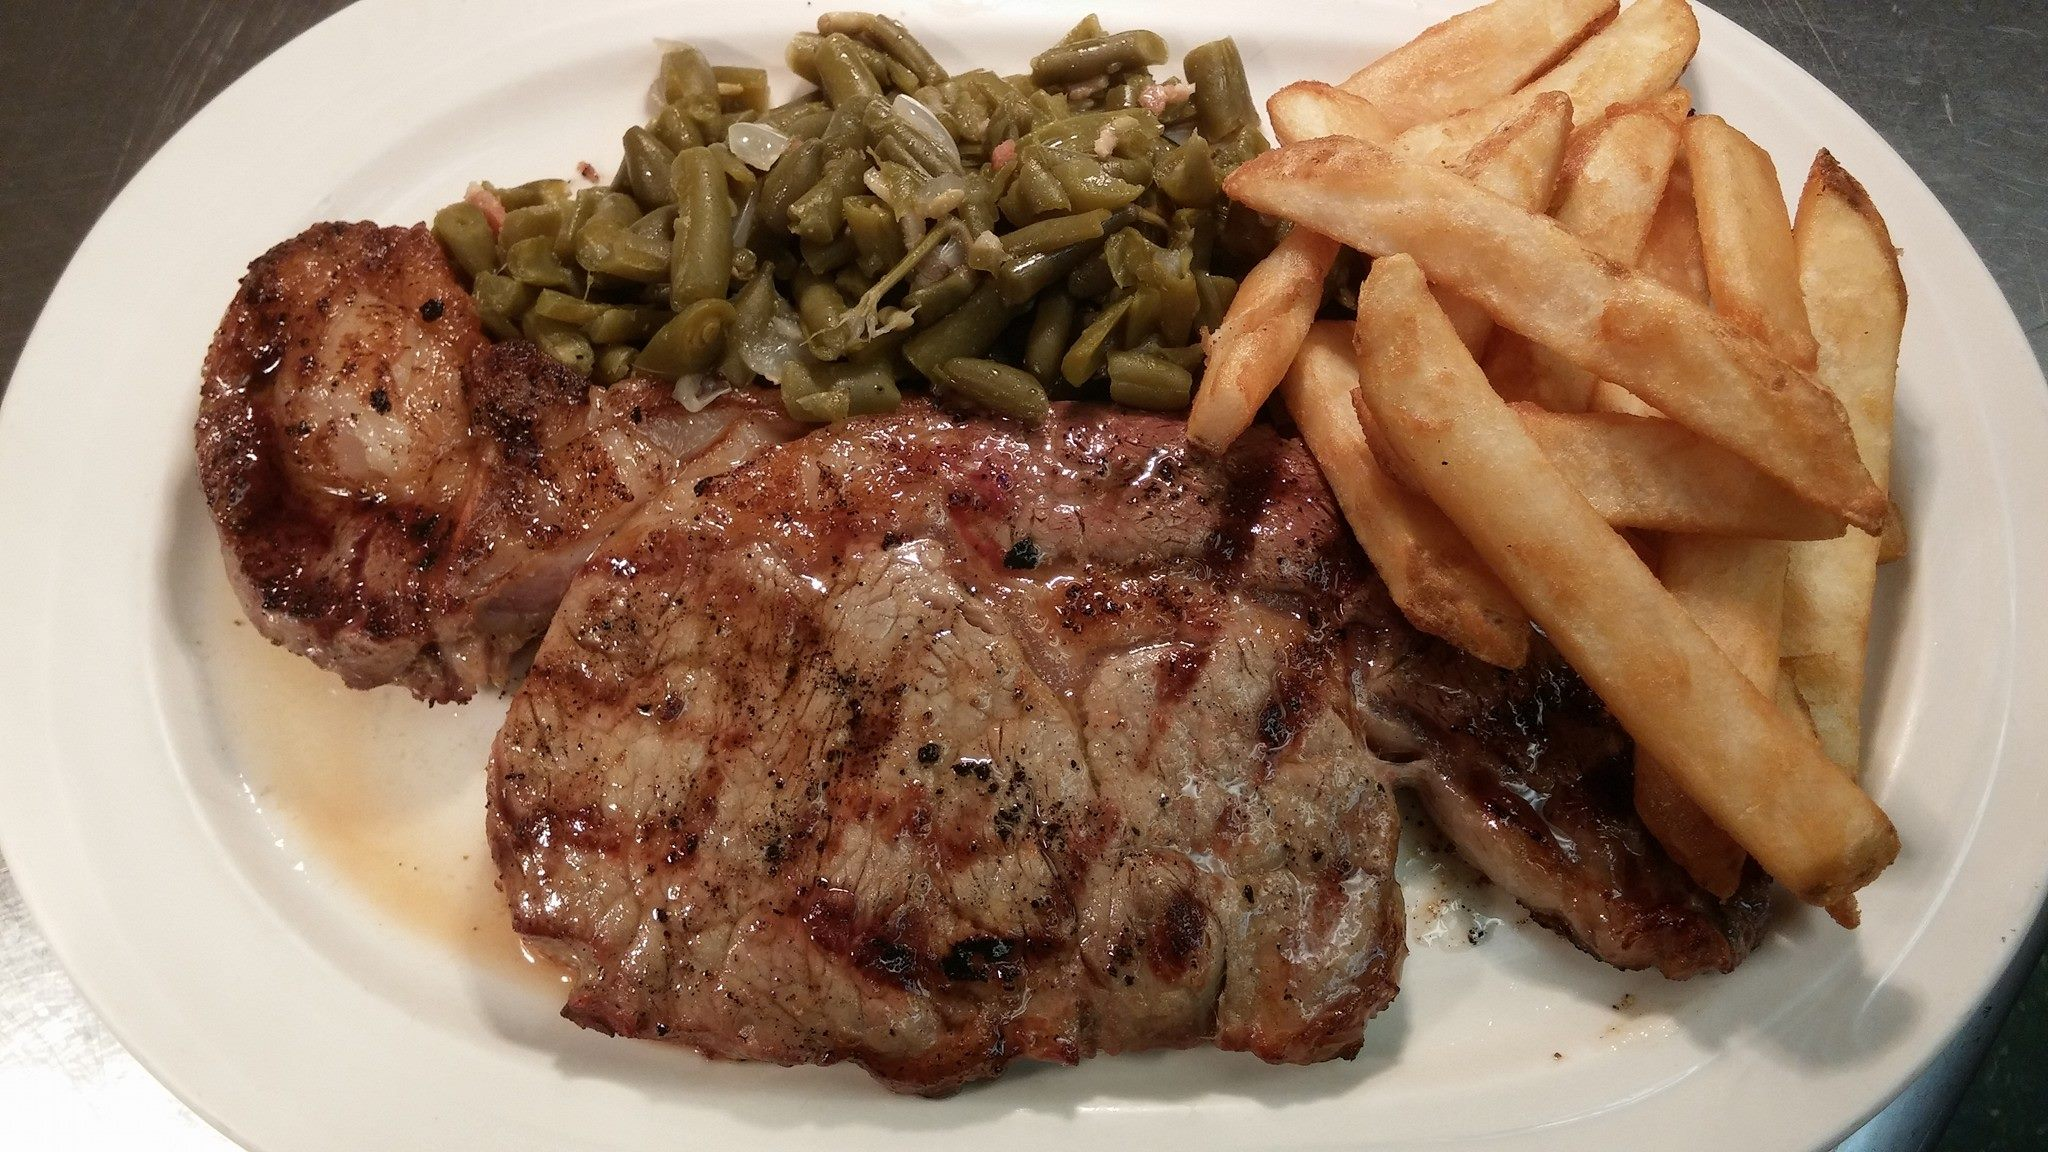 Ribeye steak. cut of beef seasoned perfectly and char-grilled to order with fries and green beans.